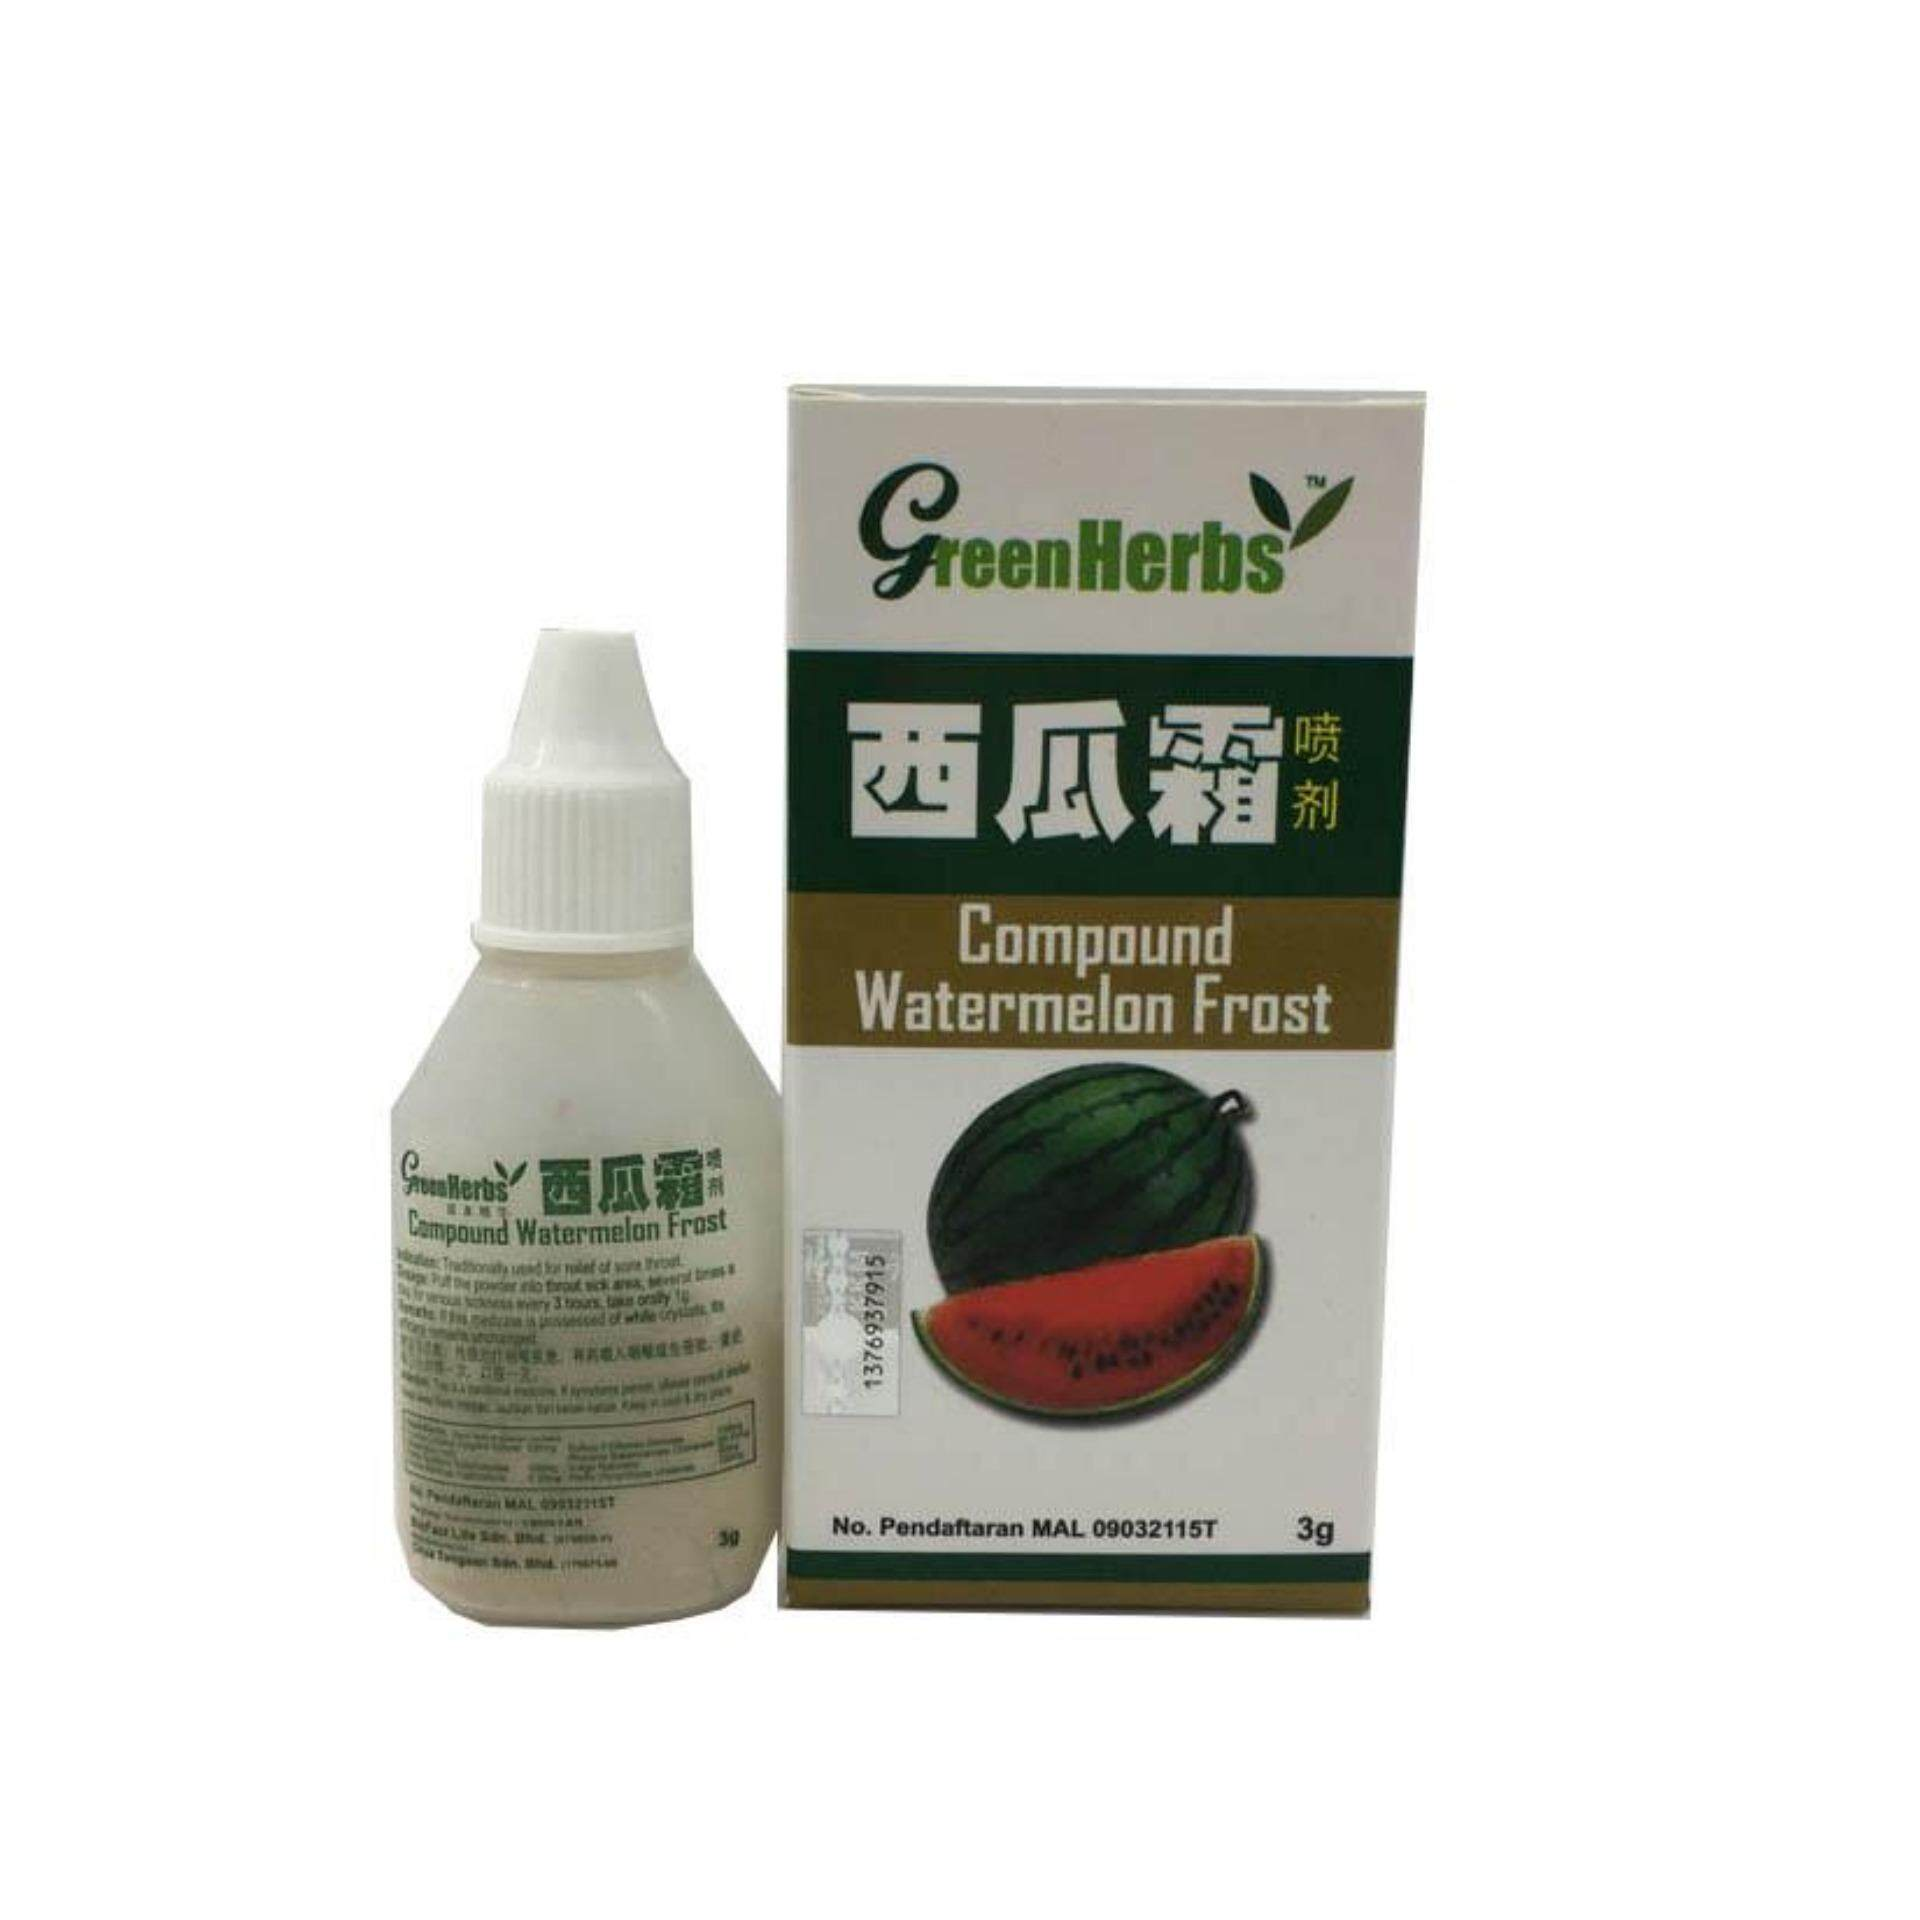 Compound Watermelon Frost Spray 3g, for Mouth Ulcers